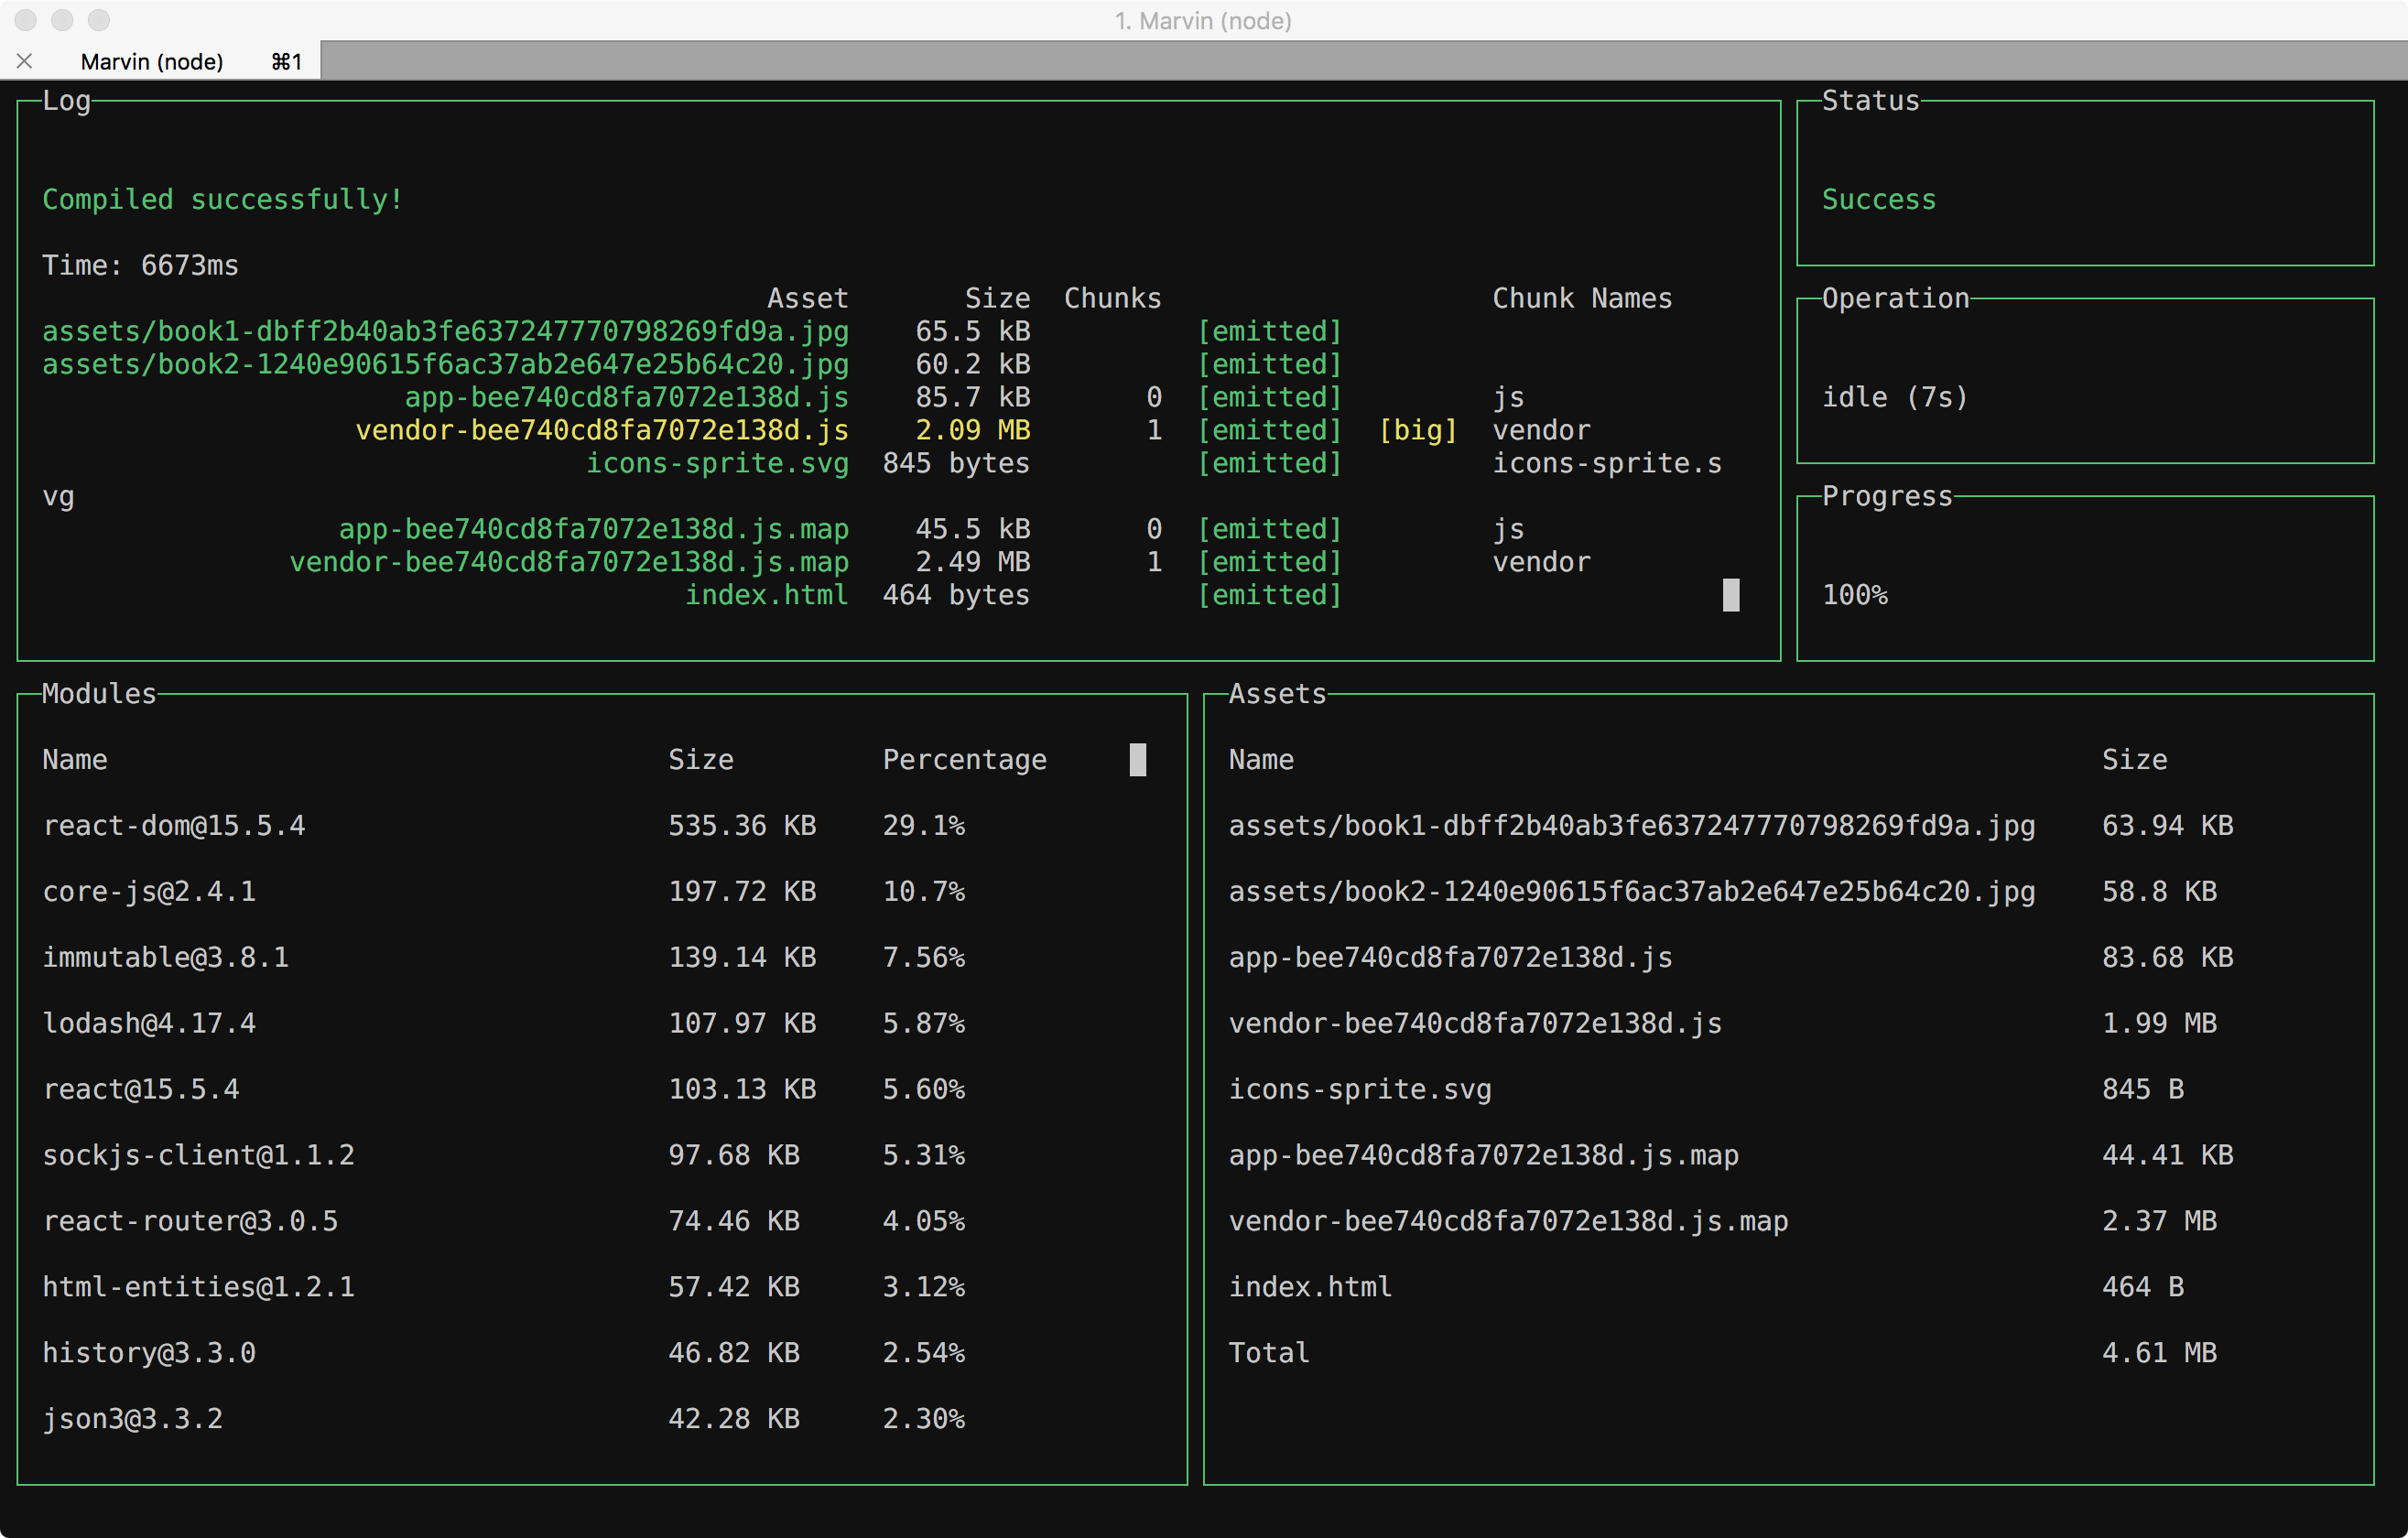 Running in the iTerm2